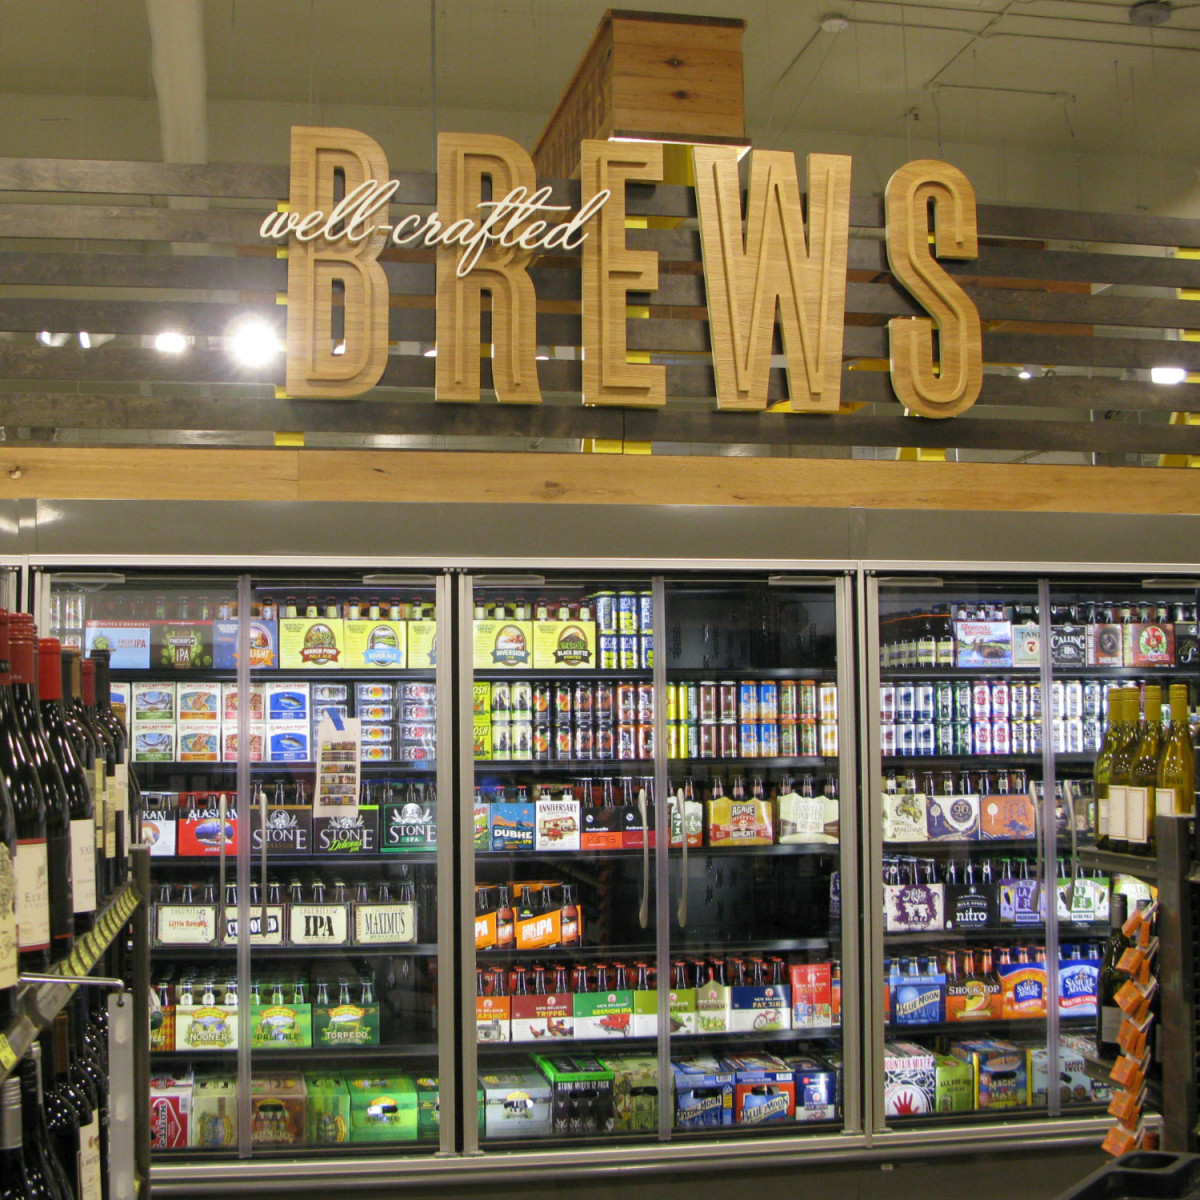 Whole Foods beer case